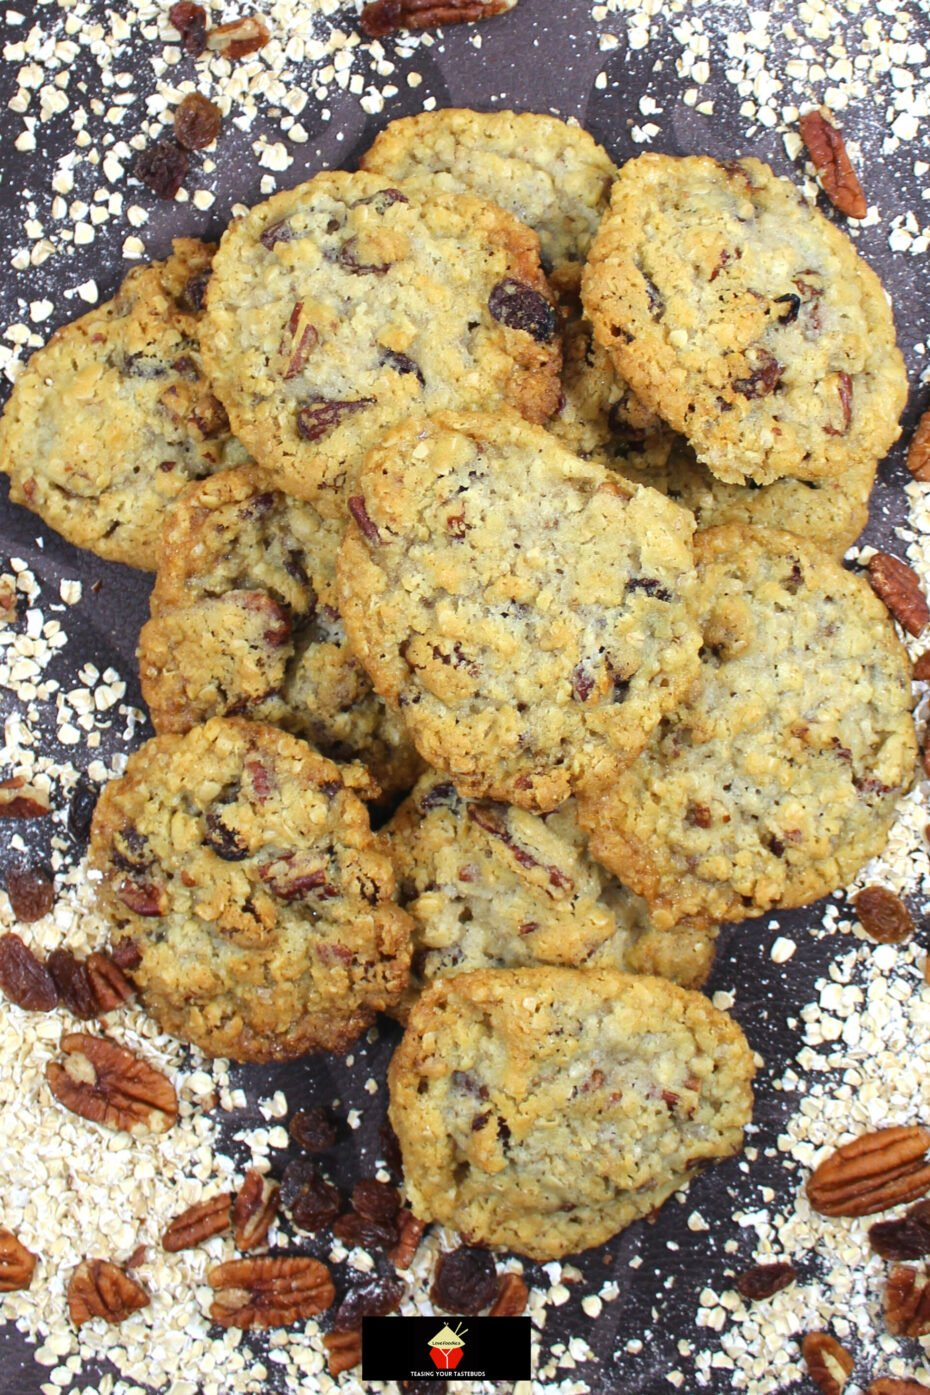 Pecan and Raisin Oatmeal Cookies. Soft and Chewy on the inside and crispy on the outside, these are the BEST EVER oatmeal cookies, loaded with pecan nuts and raisins. A simple classic cookie recipe